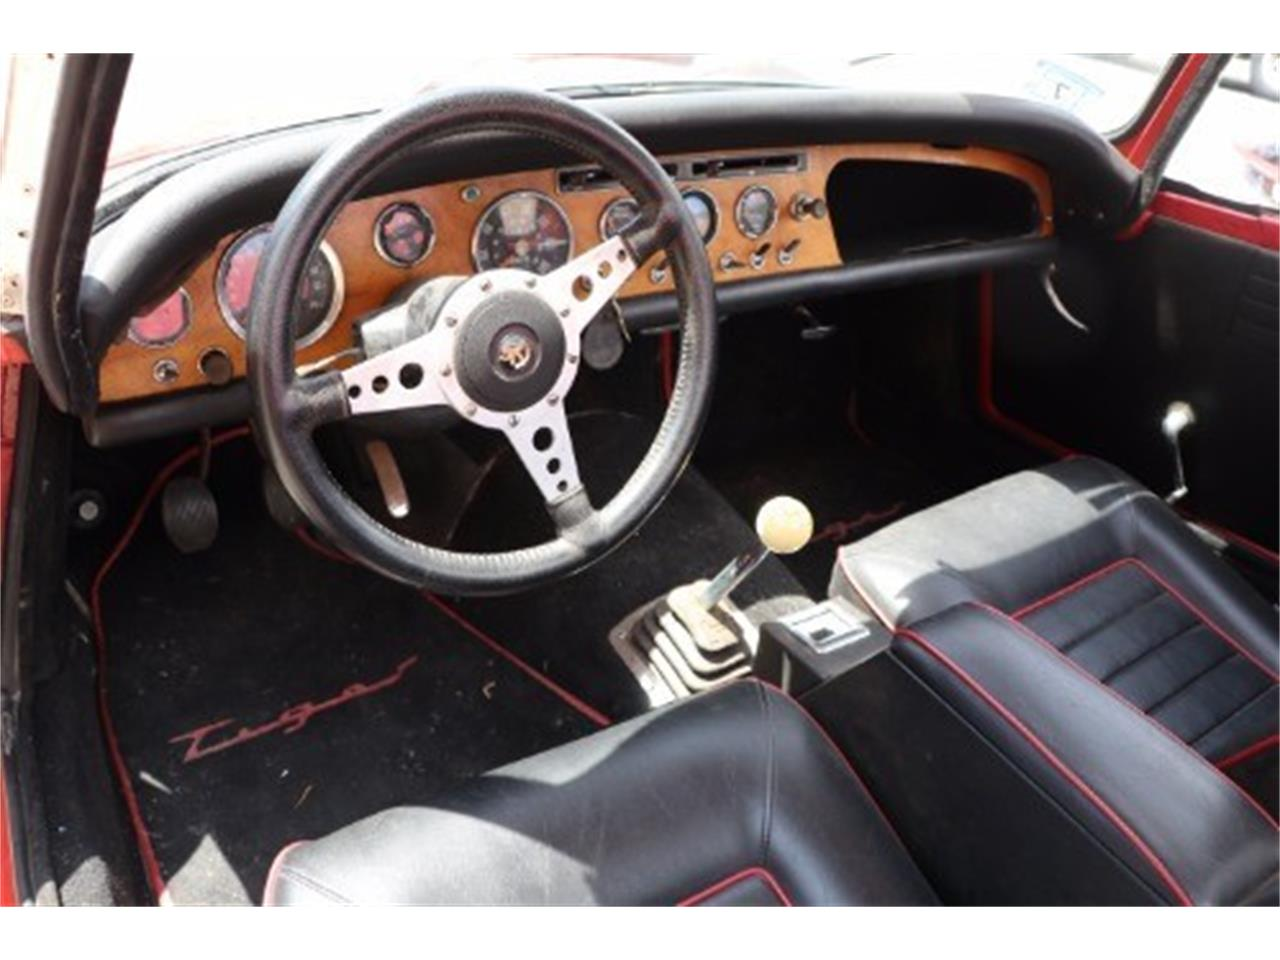 1966 Sunbeam Tiger for sale in Astoria, NY – photo 6